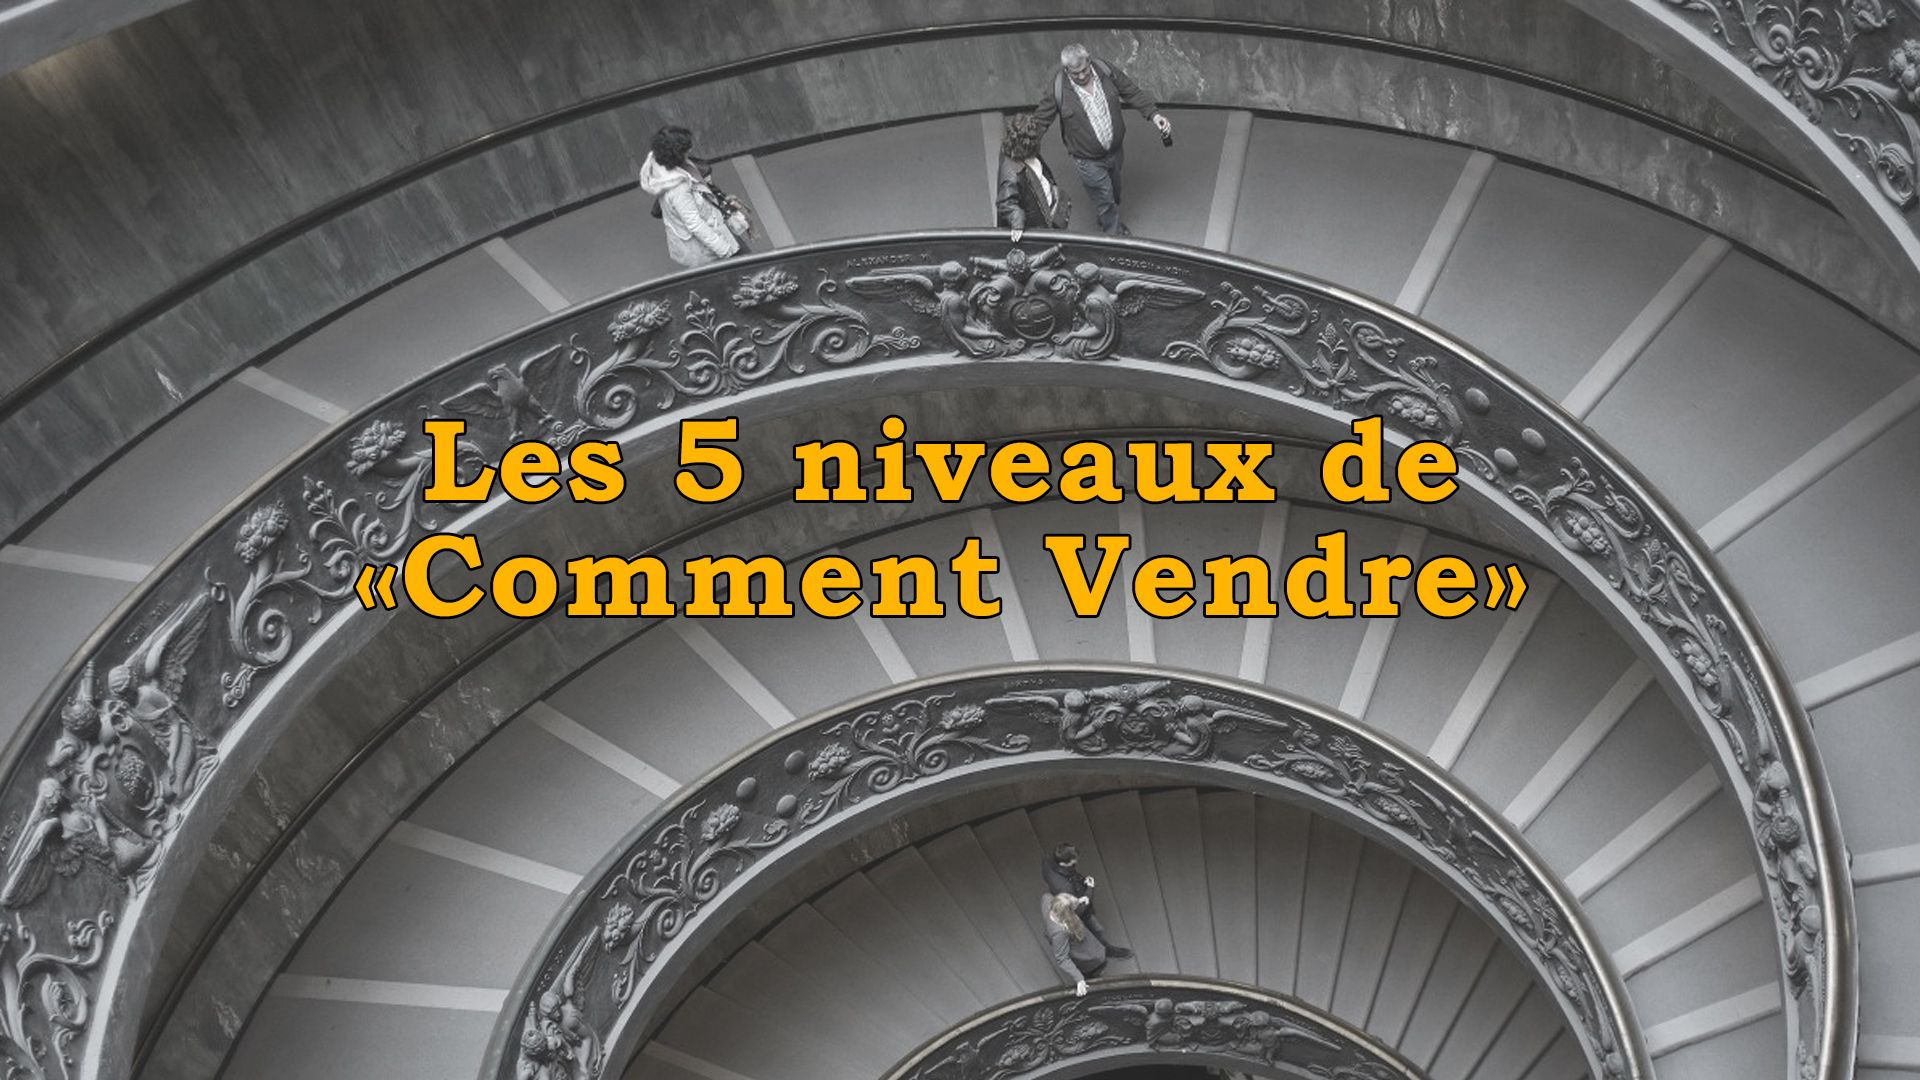 "Les 5 niveaux de ""Comment Vendre"" #GrowthHacking #WebMarketing #FormationGrowthHacking #CentreDeFormationFrance #TunnelAARRR #AARRR #SocialMedia #CommunityManagement #SEO #MarketFit #ProductMarketFit"